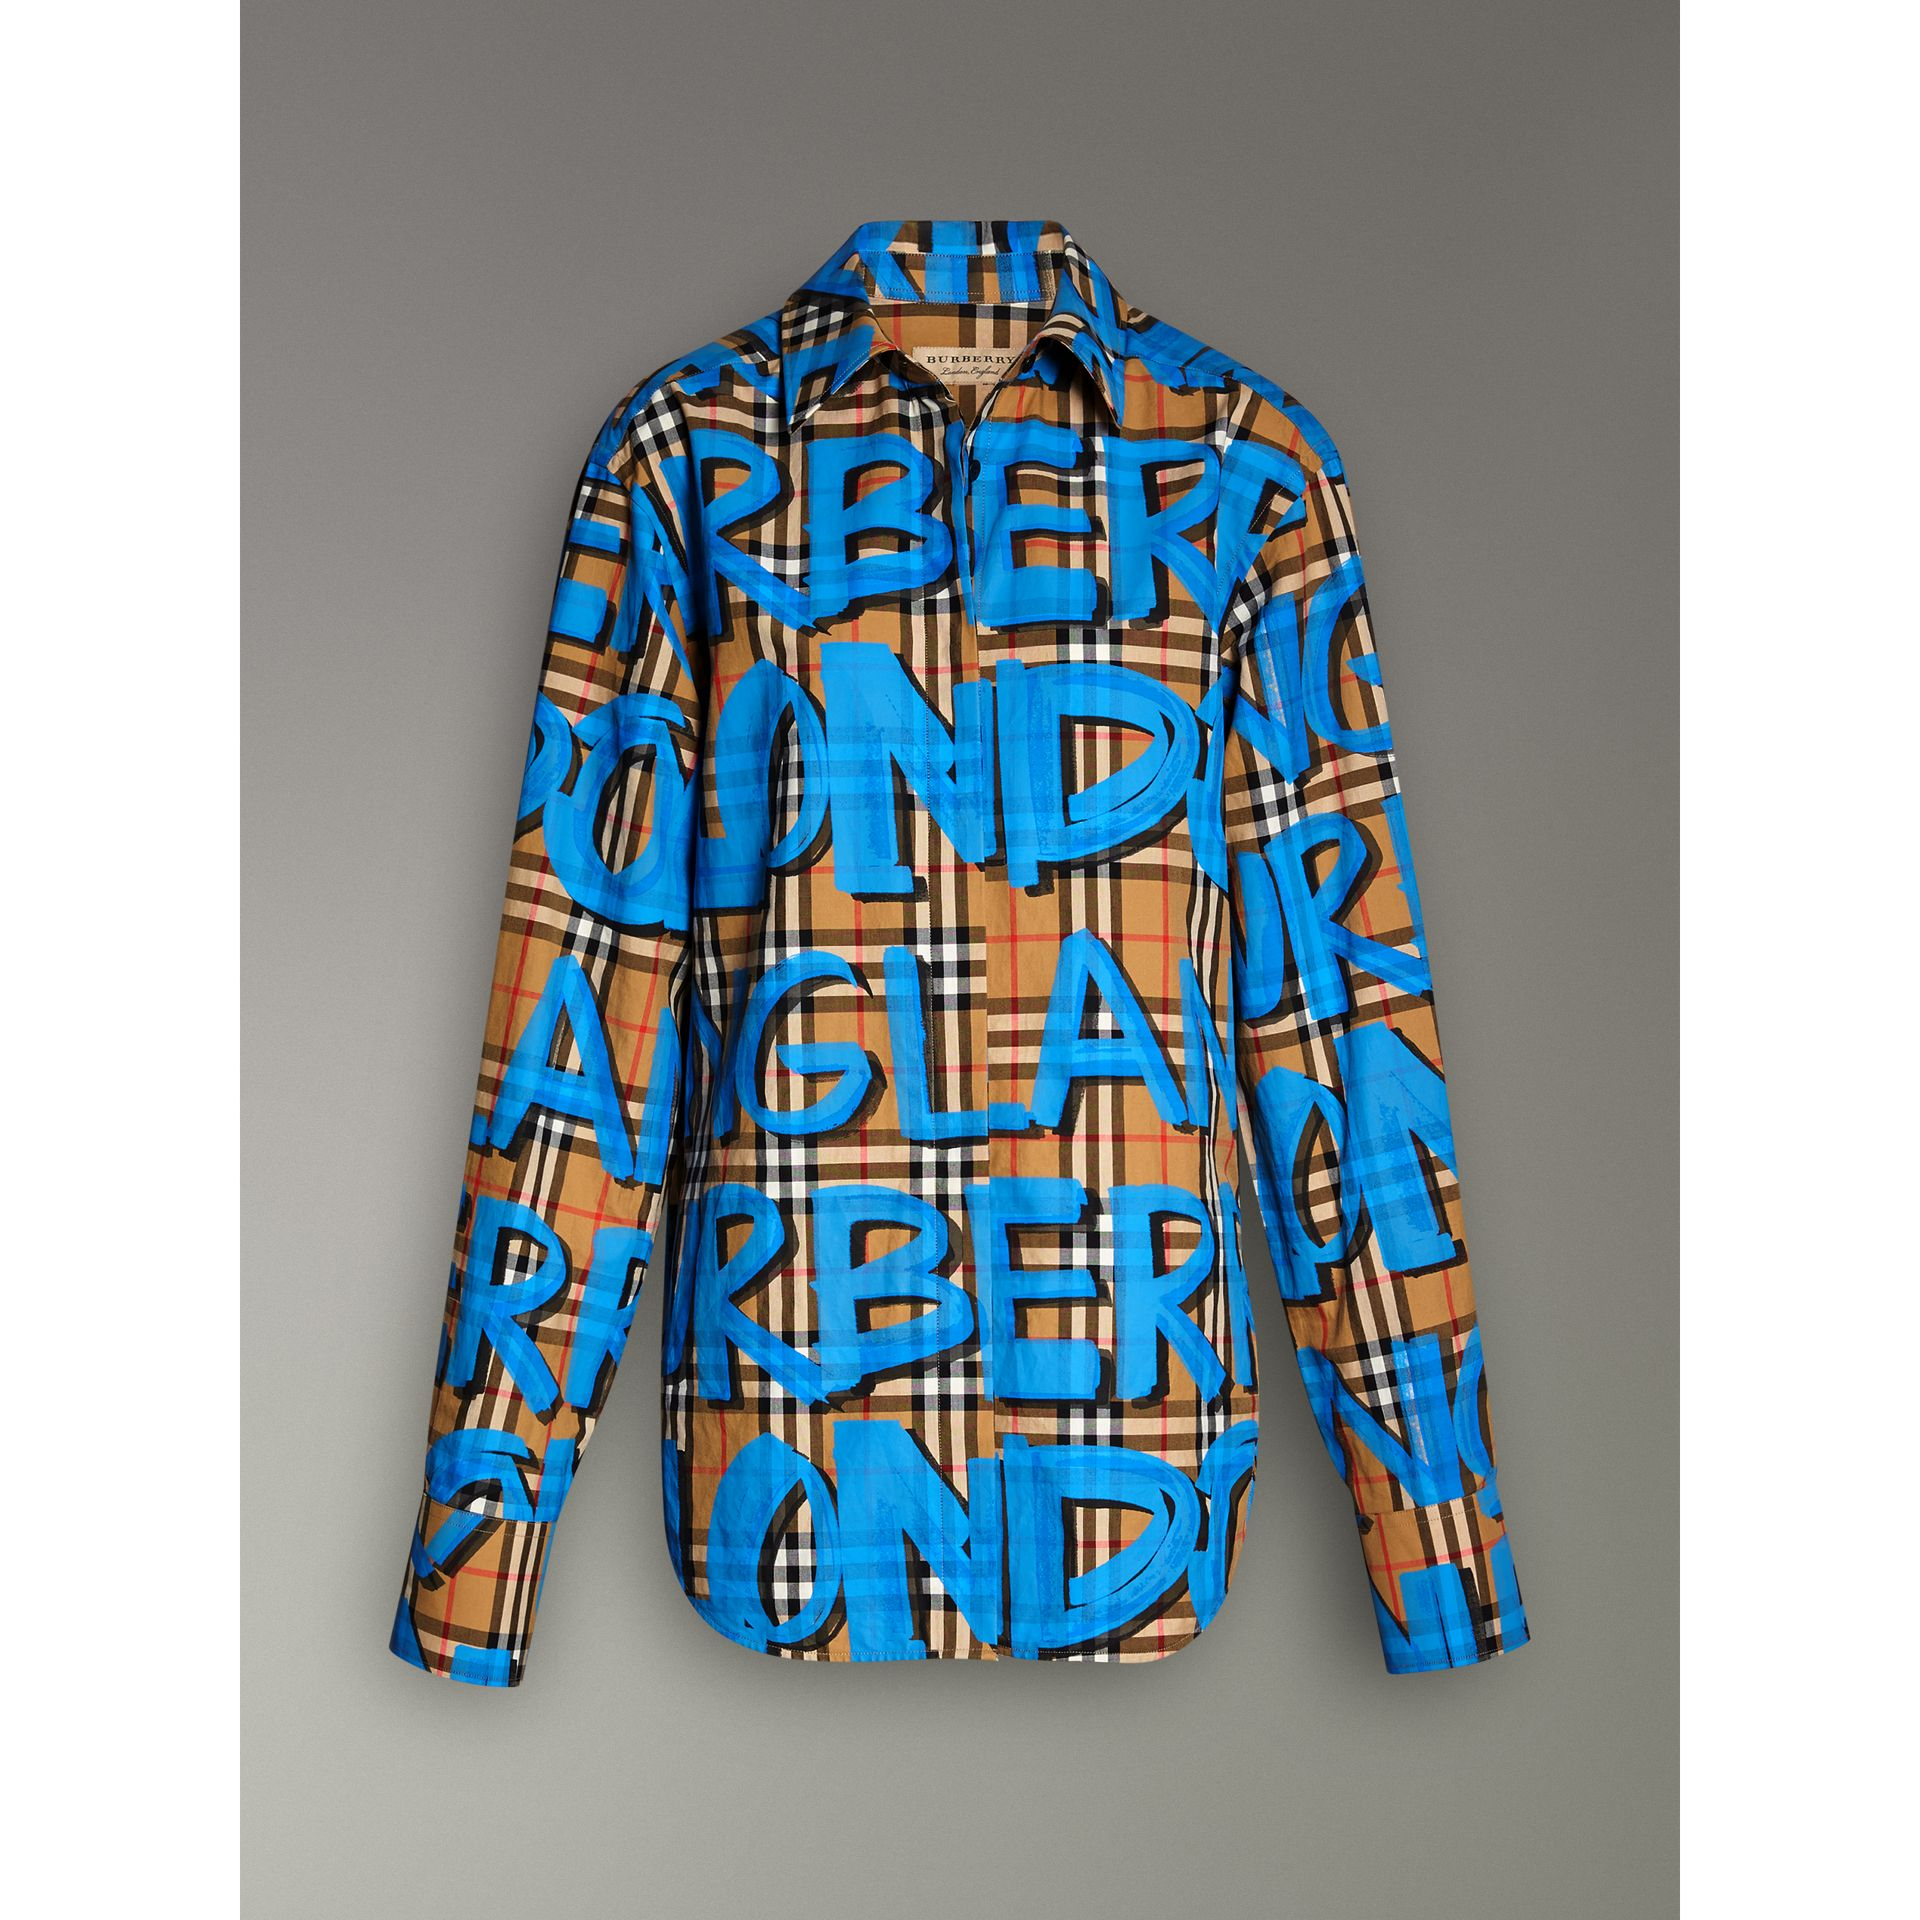 Graffiti Print Vintage Check Cotton Shirt in Bright Blue | Burberry - gallery image 3